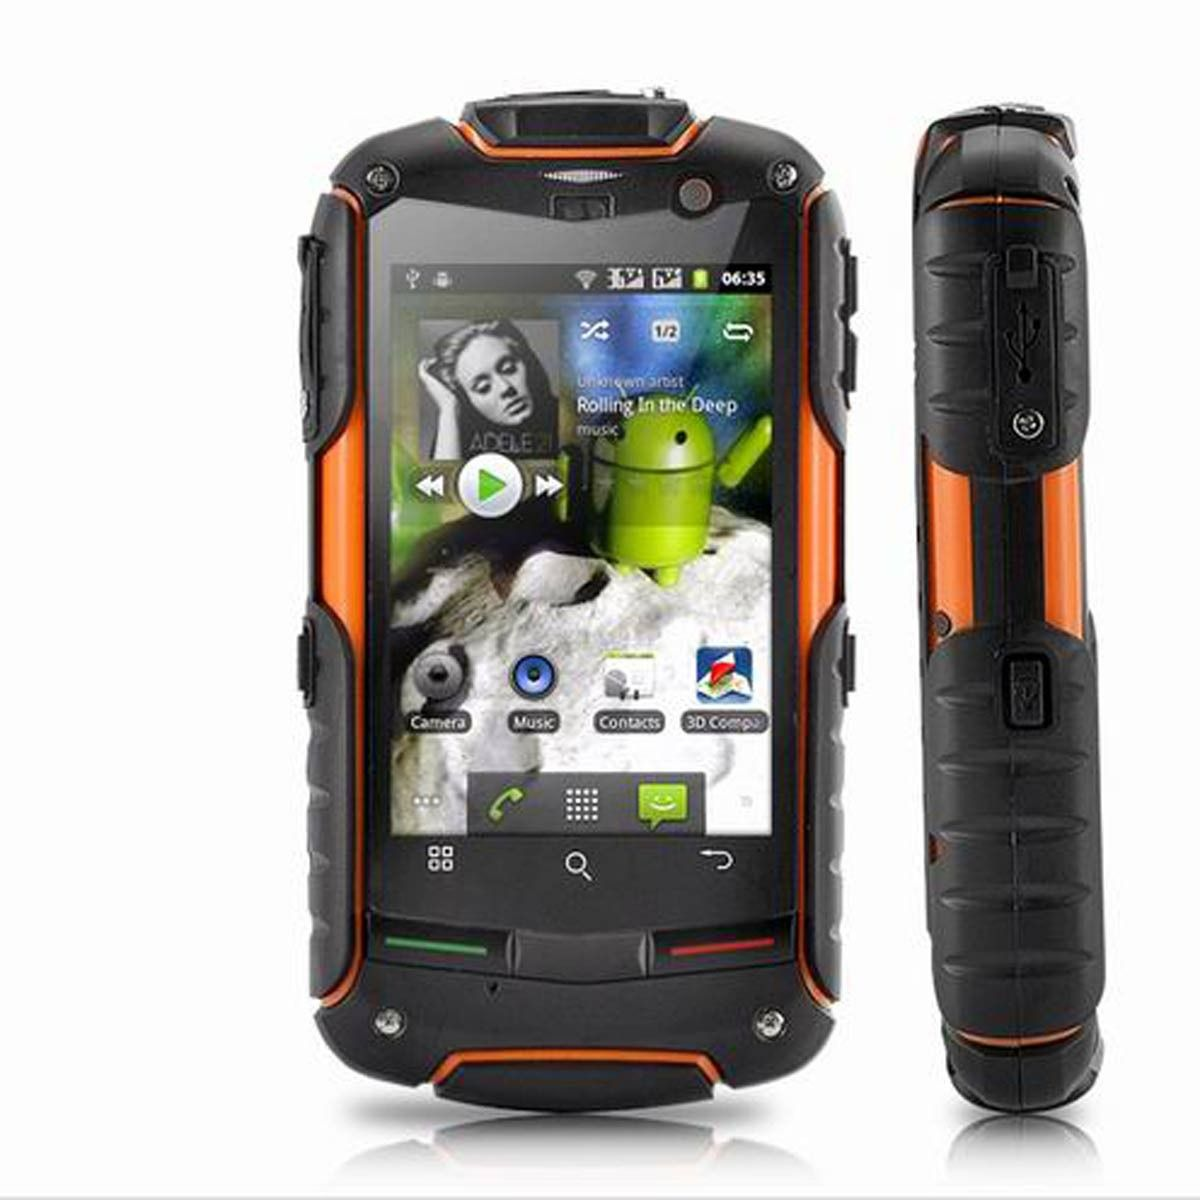 rugged phone style Google 搜尋 Waterproof phone, Android